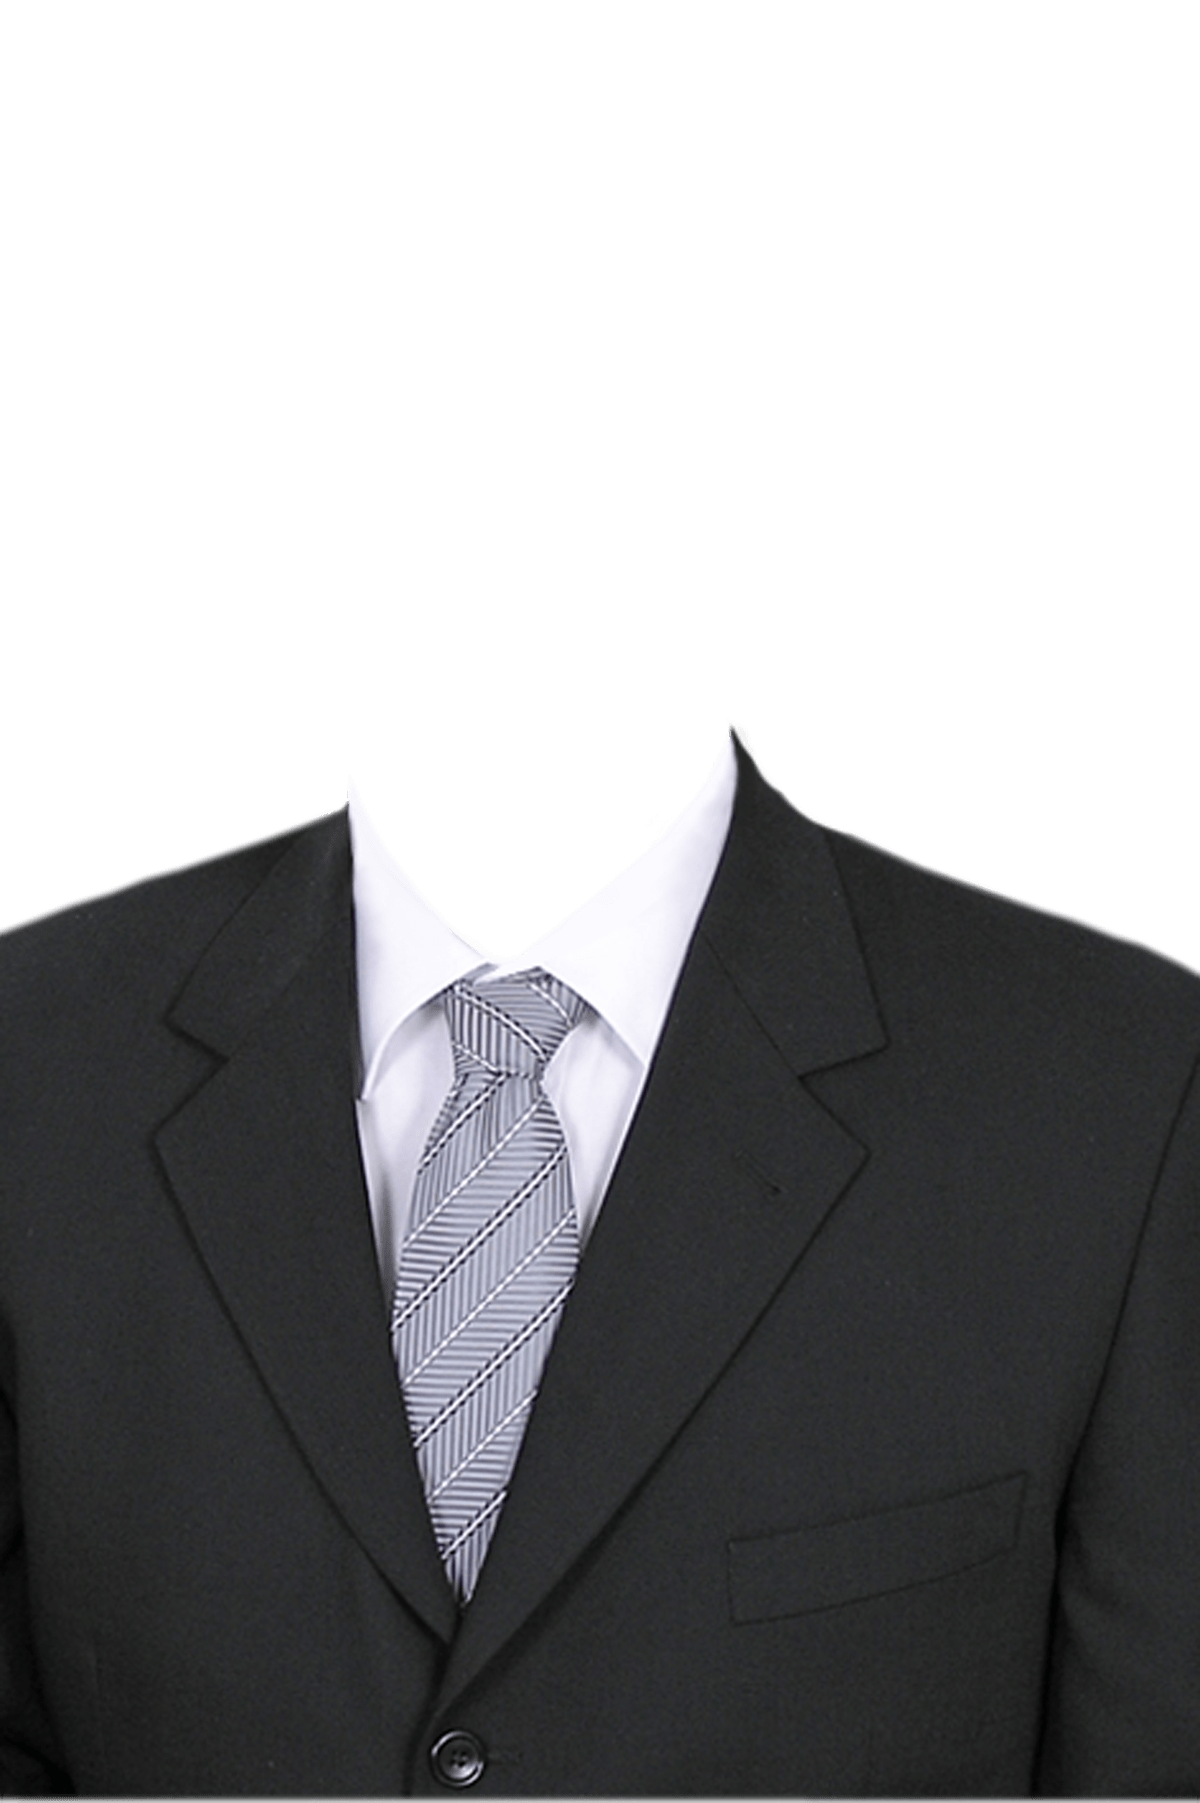 Man In A Suit Template in 2019.